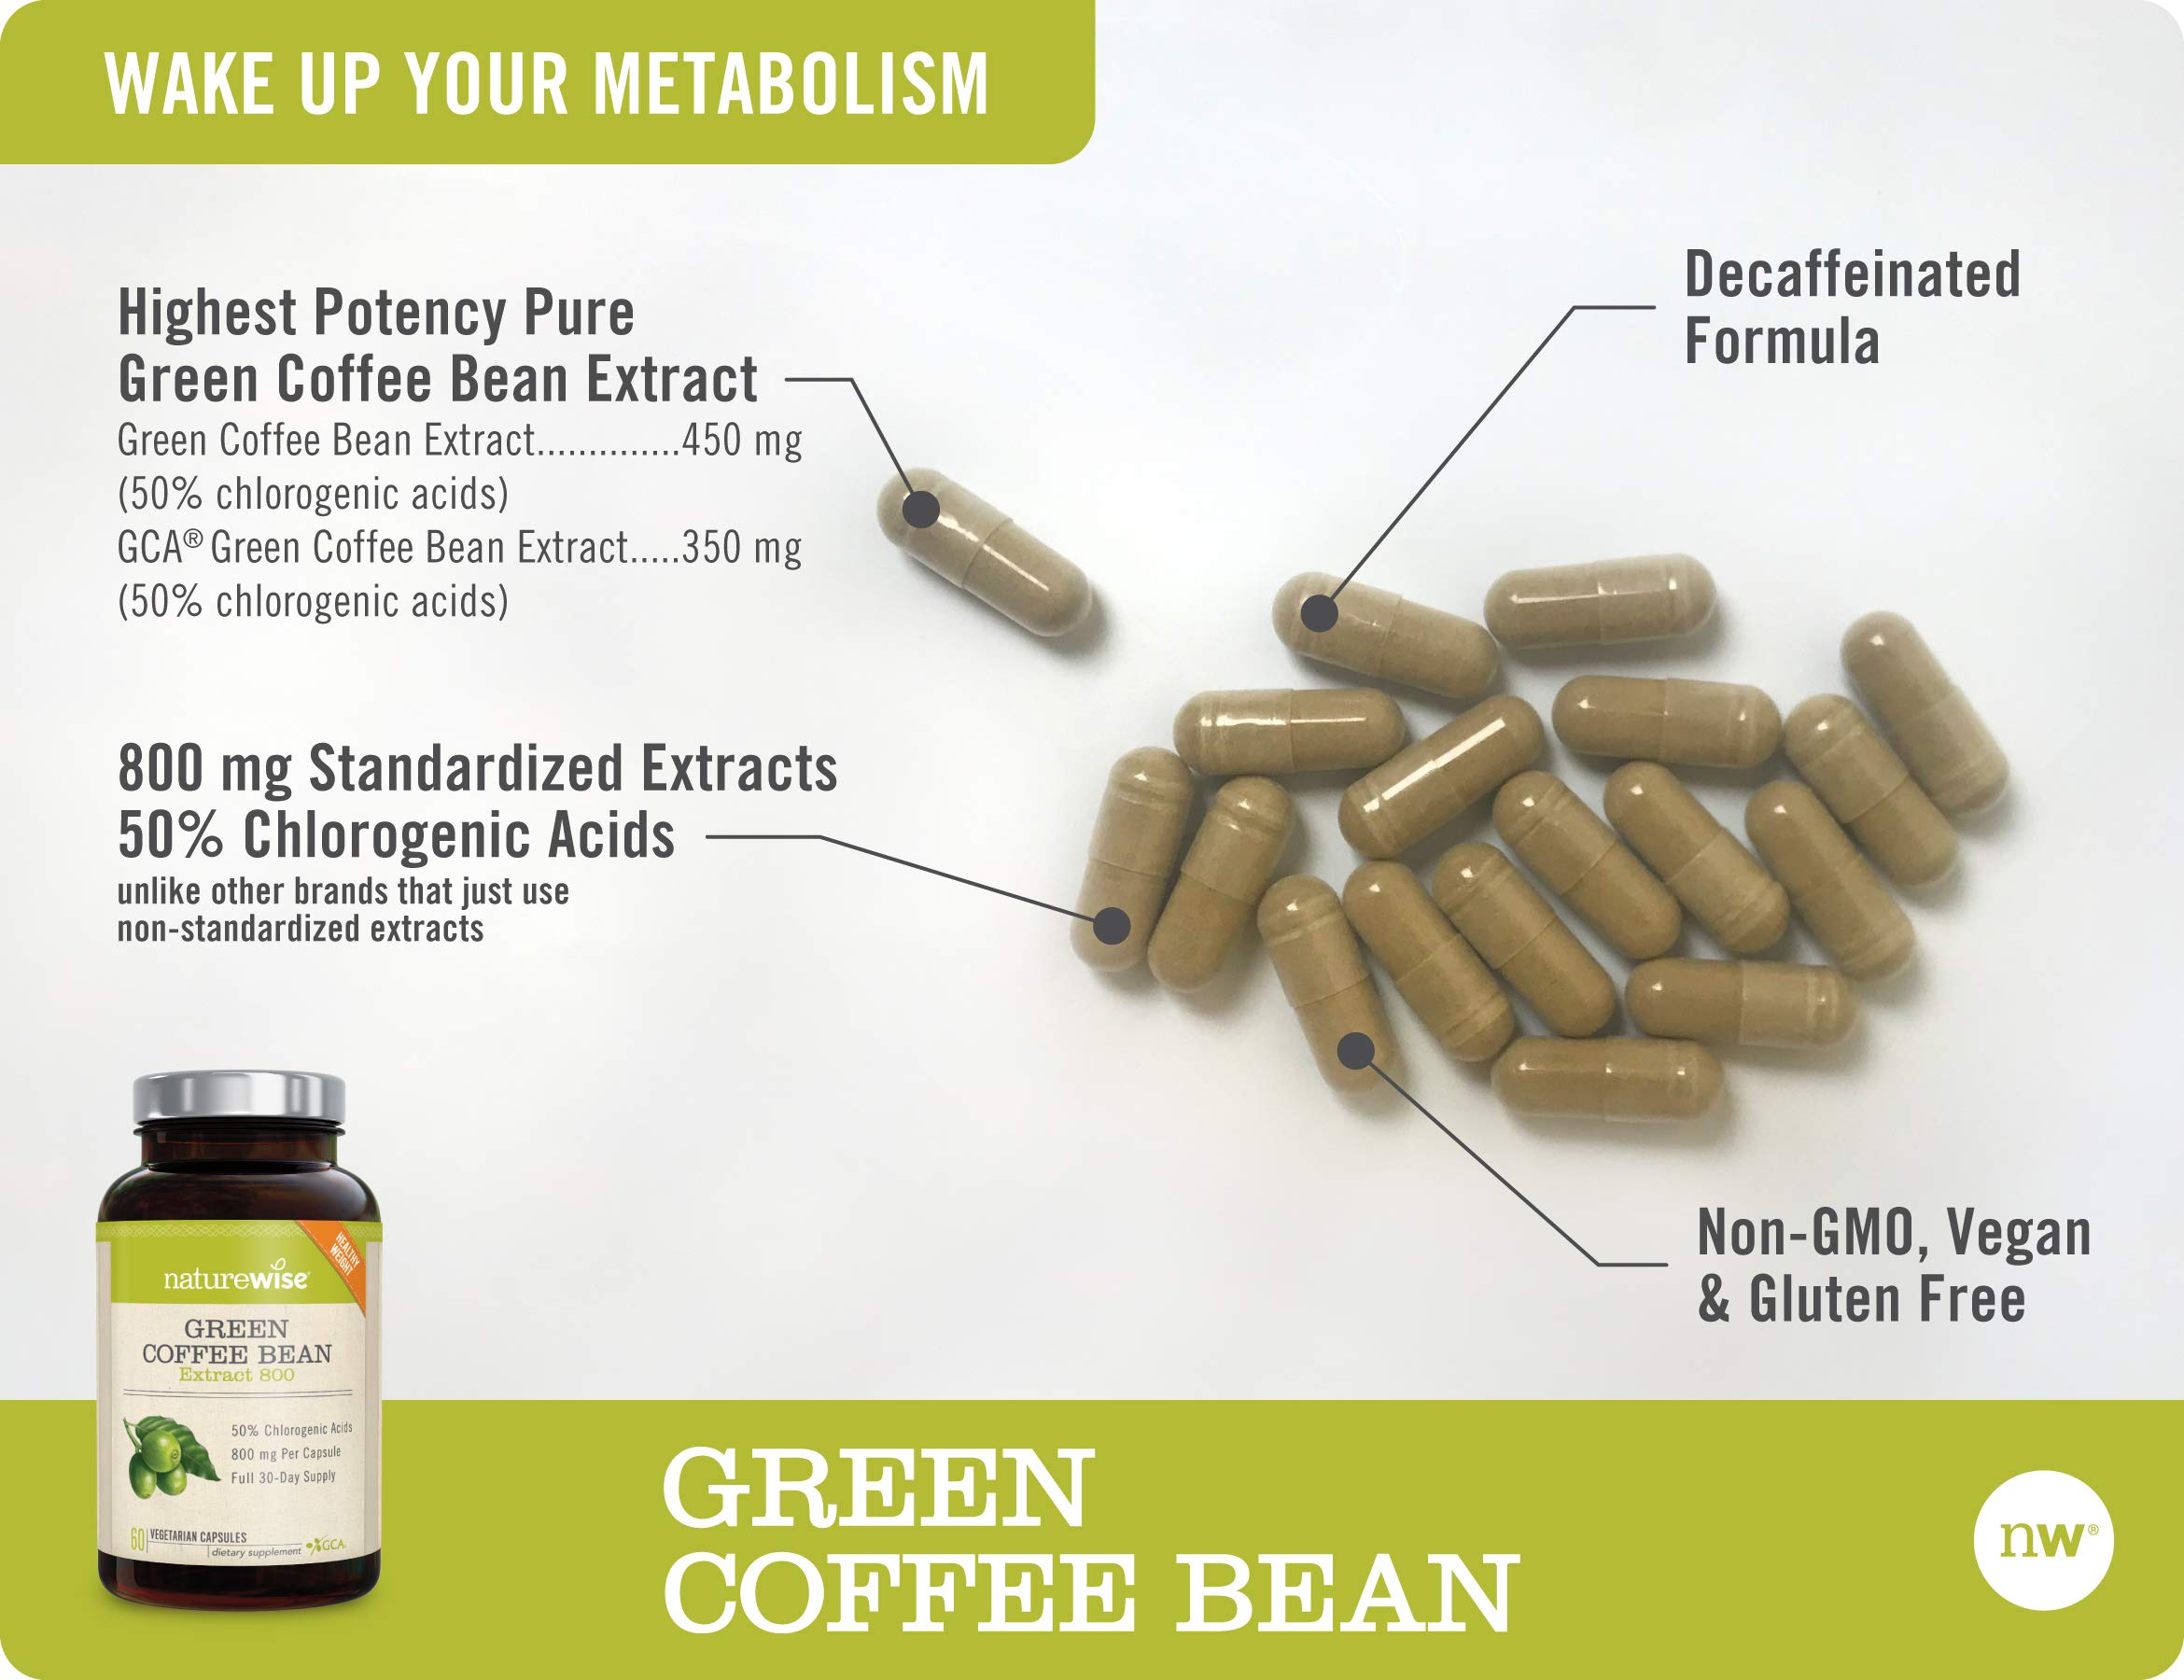 NatureWise Green Coffee Bean 800mg Max Potency Extract 50% Chlorogenic Acids | Raw Green Coffee Antioxidant Supplement & Metabolism Booster for Weight Loss | Non-GMO, Vegan, Gluten-Free [2 Month] by NatureWise (Image #5)